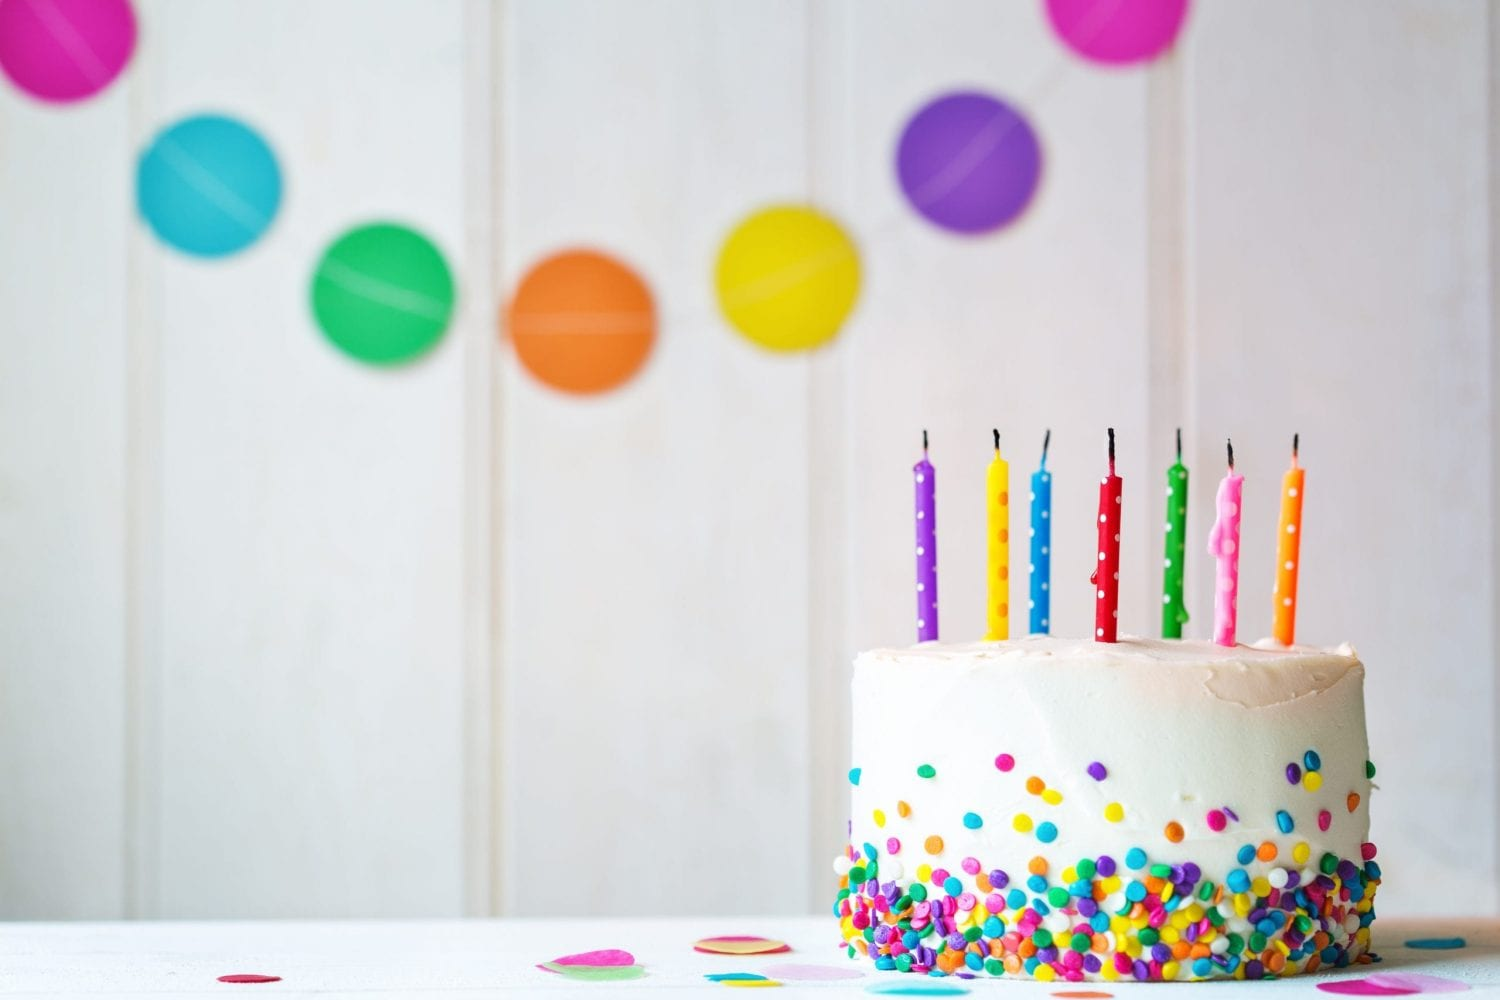 Cannabis birthday cake with sprinkles on the side of it with blown out candles in front of a wall with birthday decorations on it.